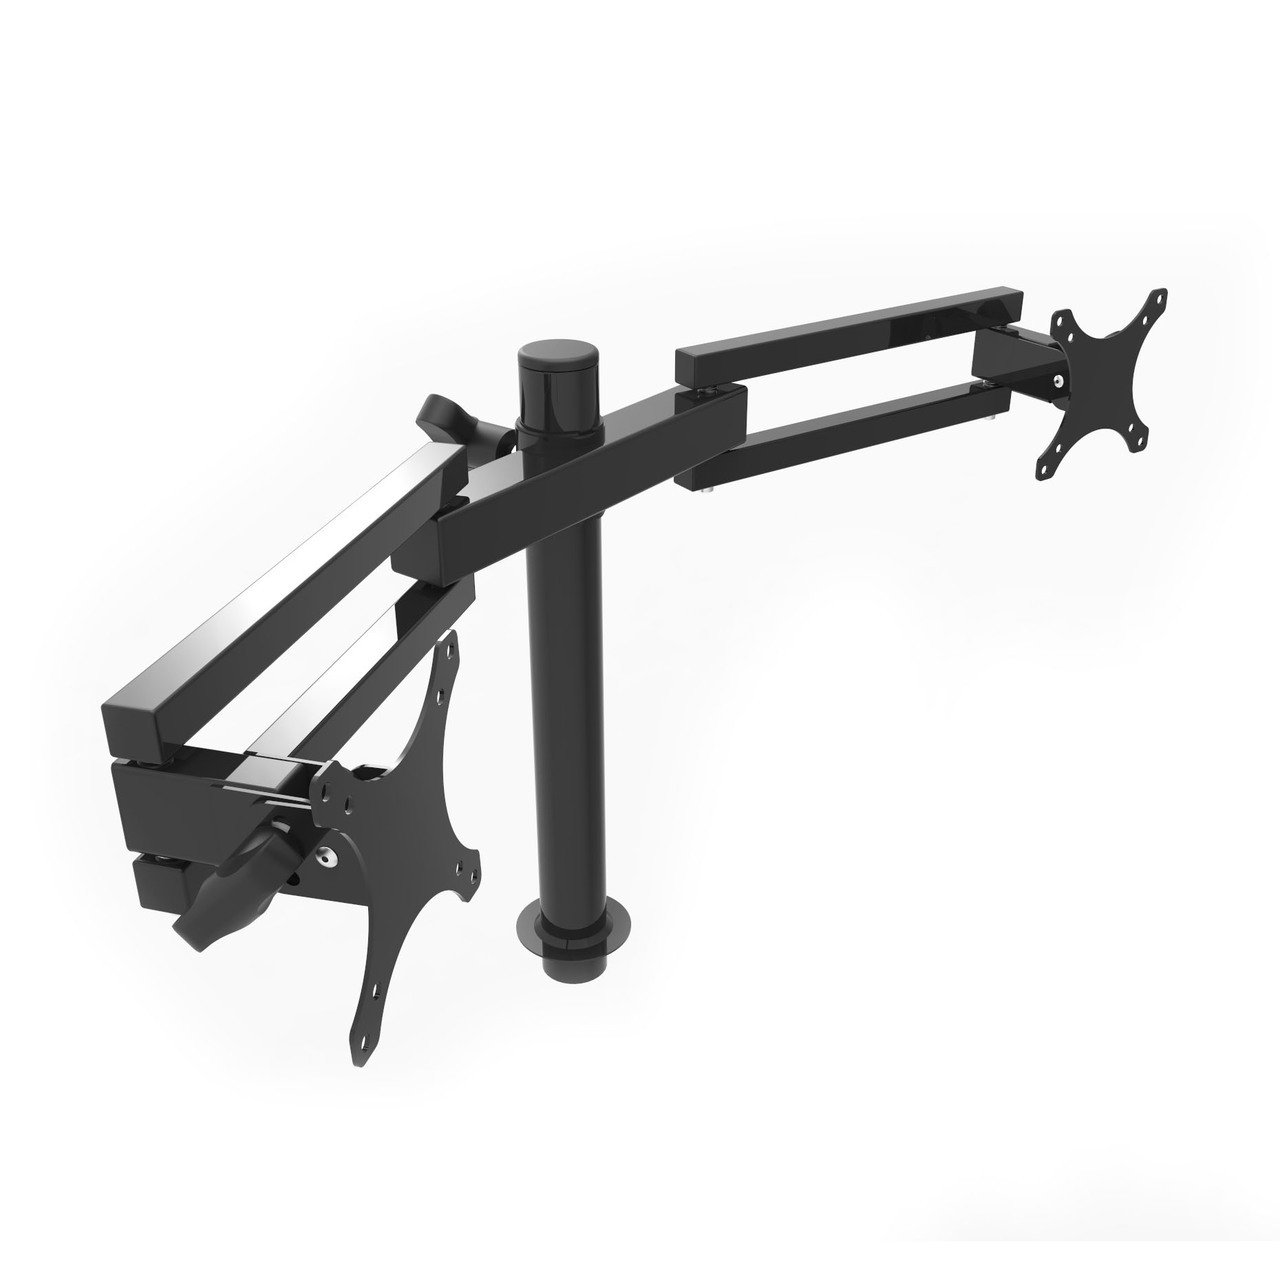 Versadesk Dual Arm Adjustable Spider LCD Monitor Arm, Swivel Motion Mount Stand - (Versadesk Power Pro) - Compatible with Versa Desks Only